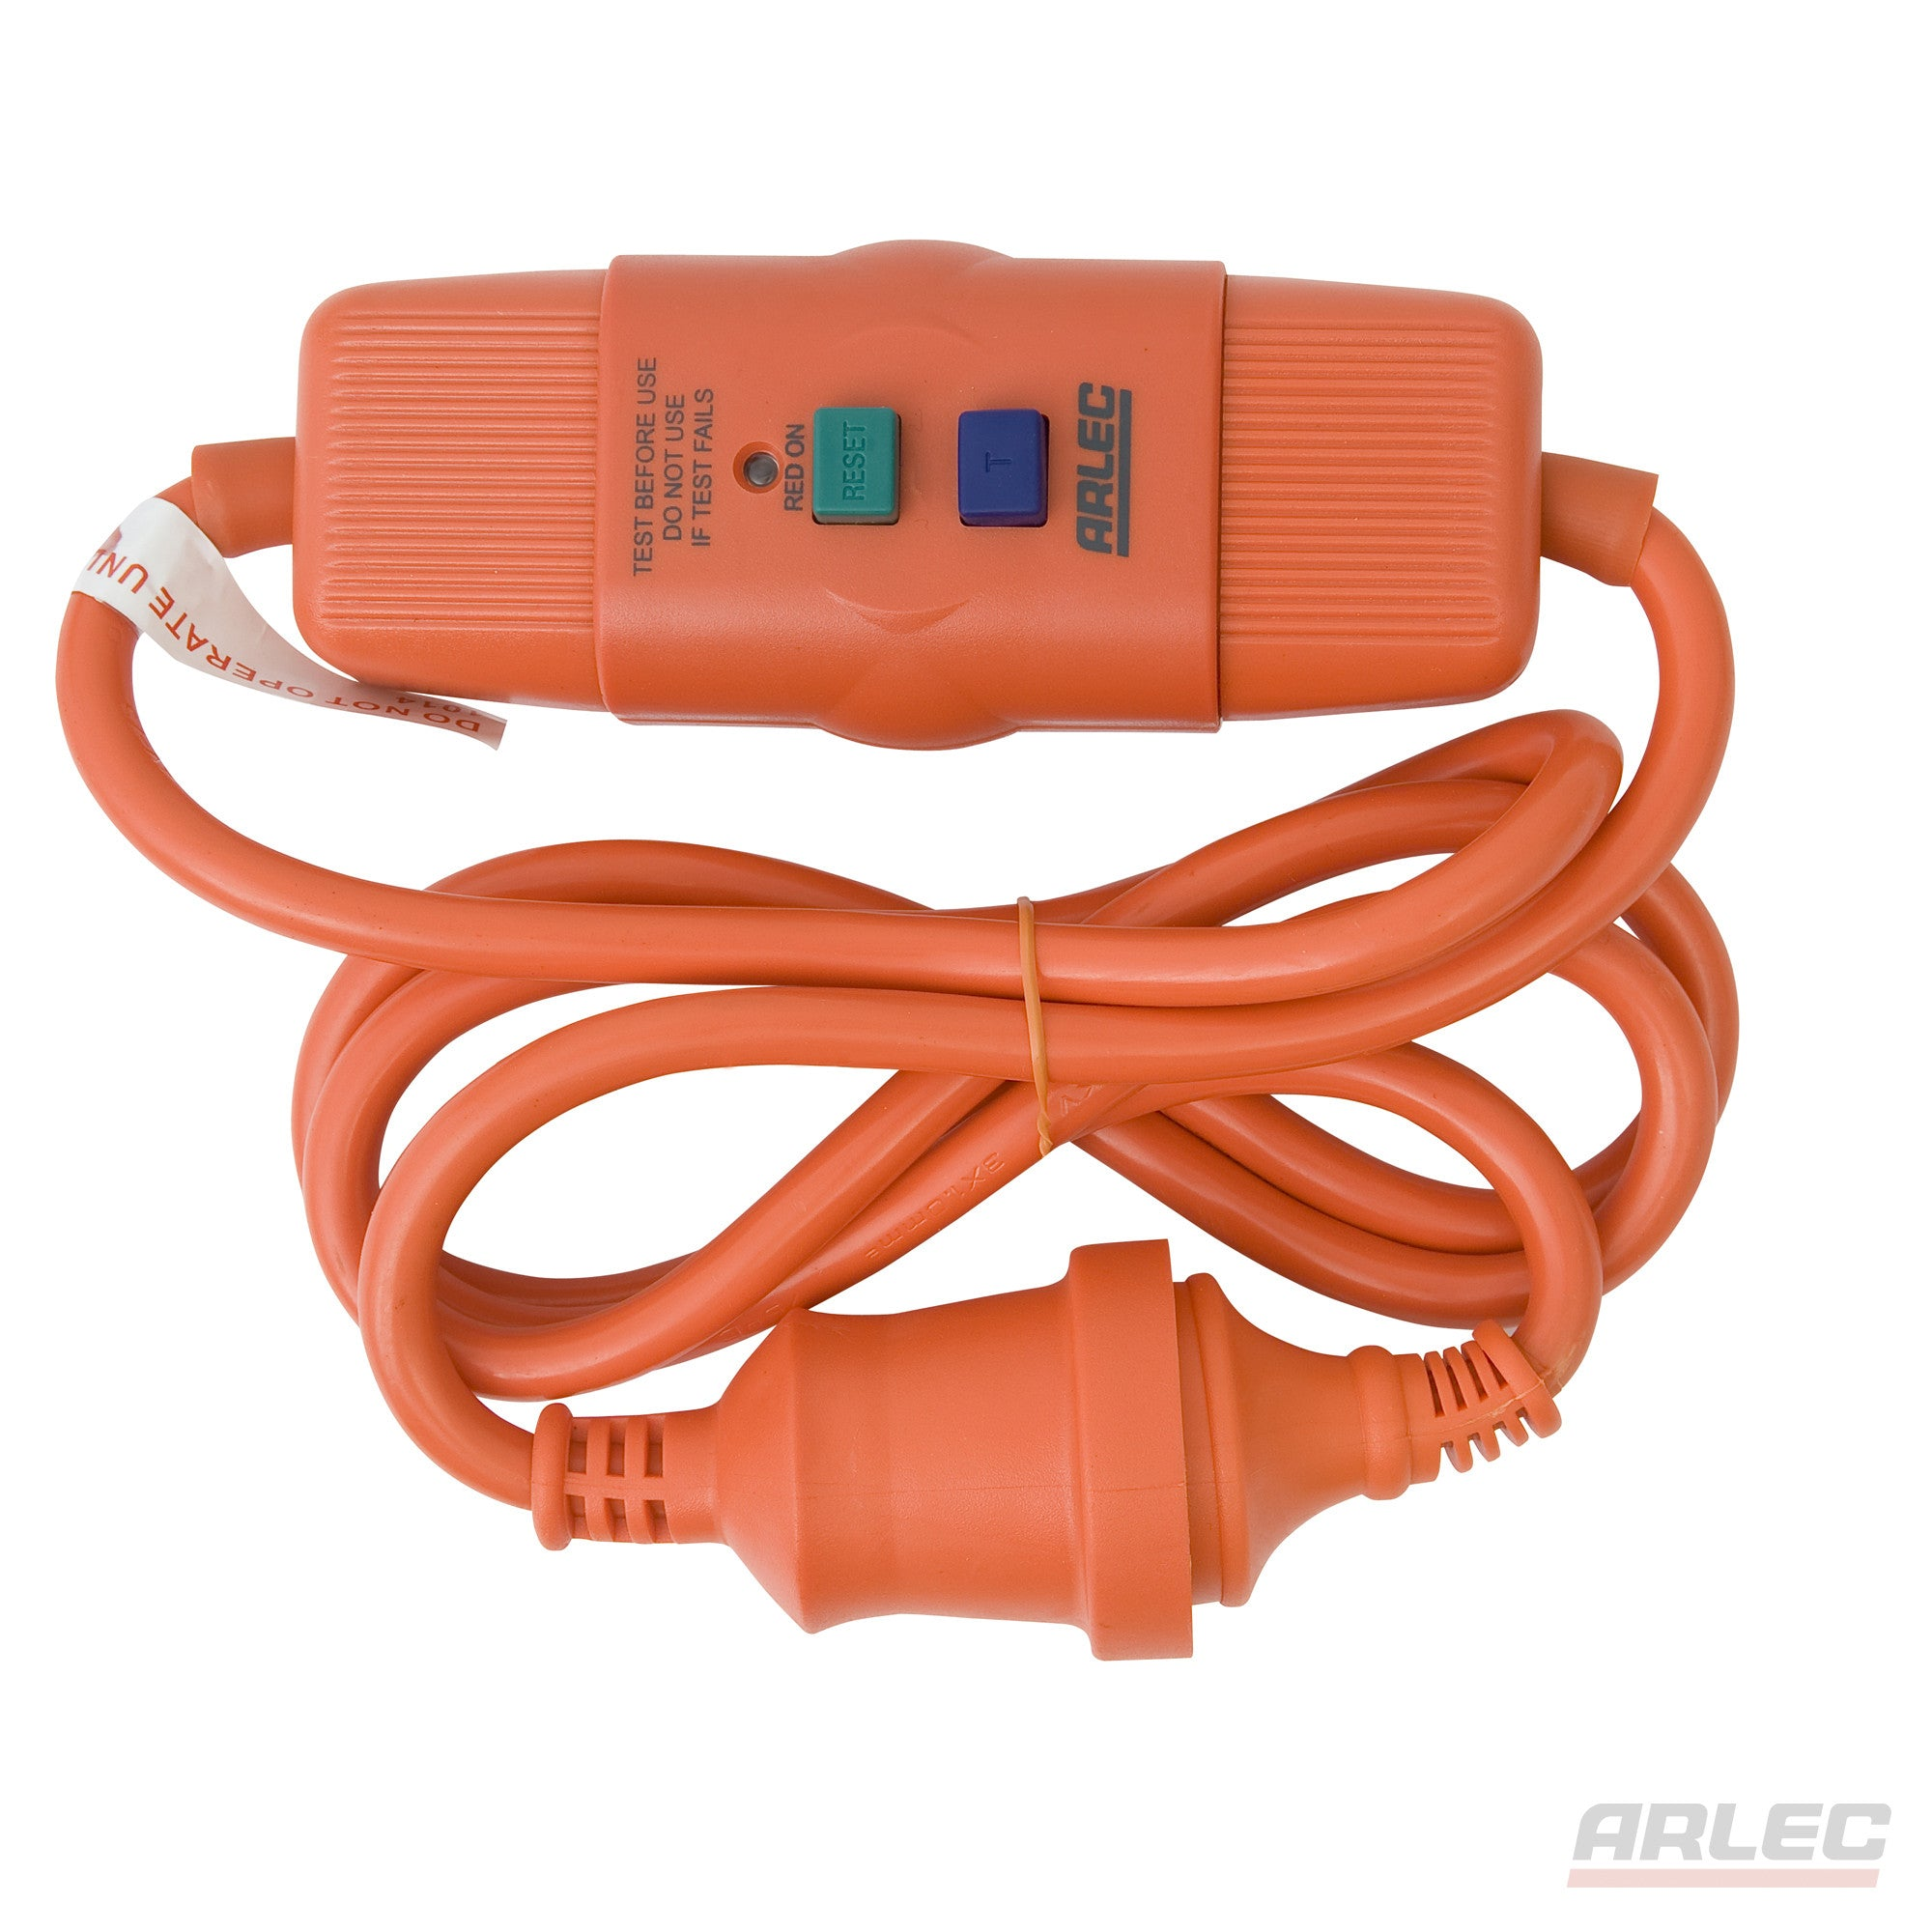 Arlec ARLEC In-Line Safety Switch Heavy Duty Extension Lead - ORE18 - BNR Industrial